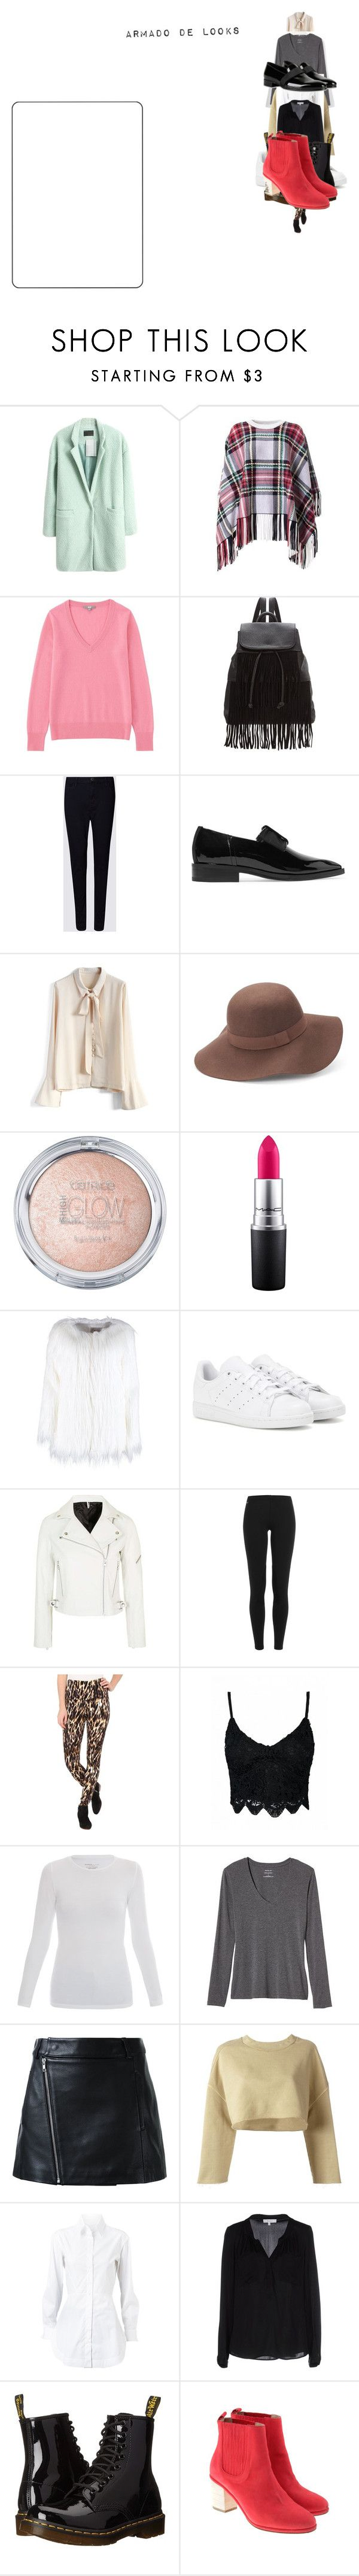 """cualquier cosa"" by ludmilisima on Polyvore featuring moda, Chloé, Uniqlo, Glamorous, Lanvin, Chicwish, MAC Cosmetics, adidas, Topshop y Polo Ralph Lauren"